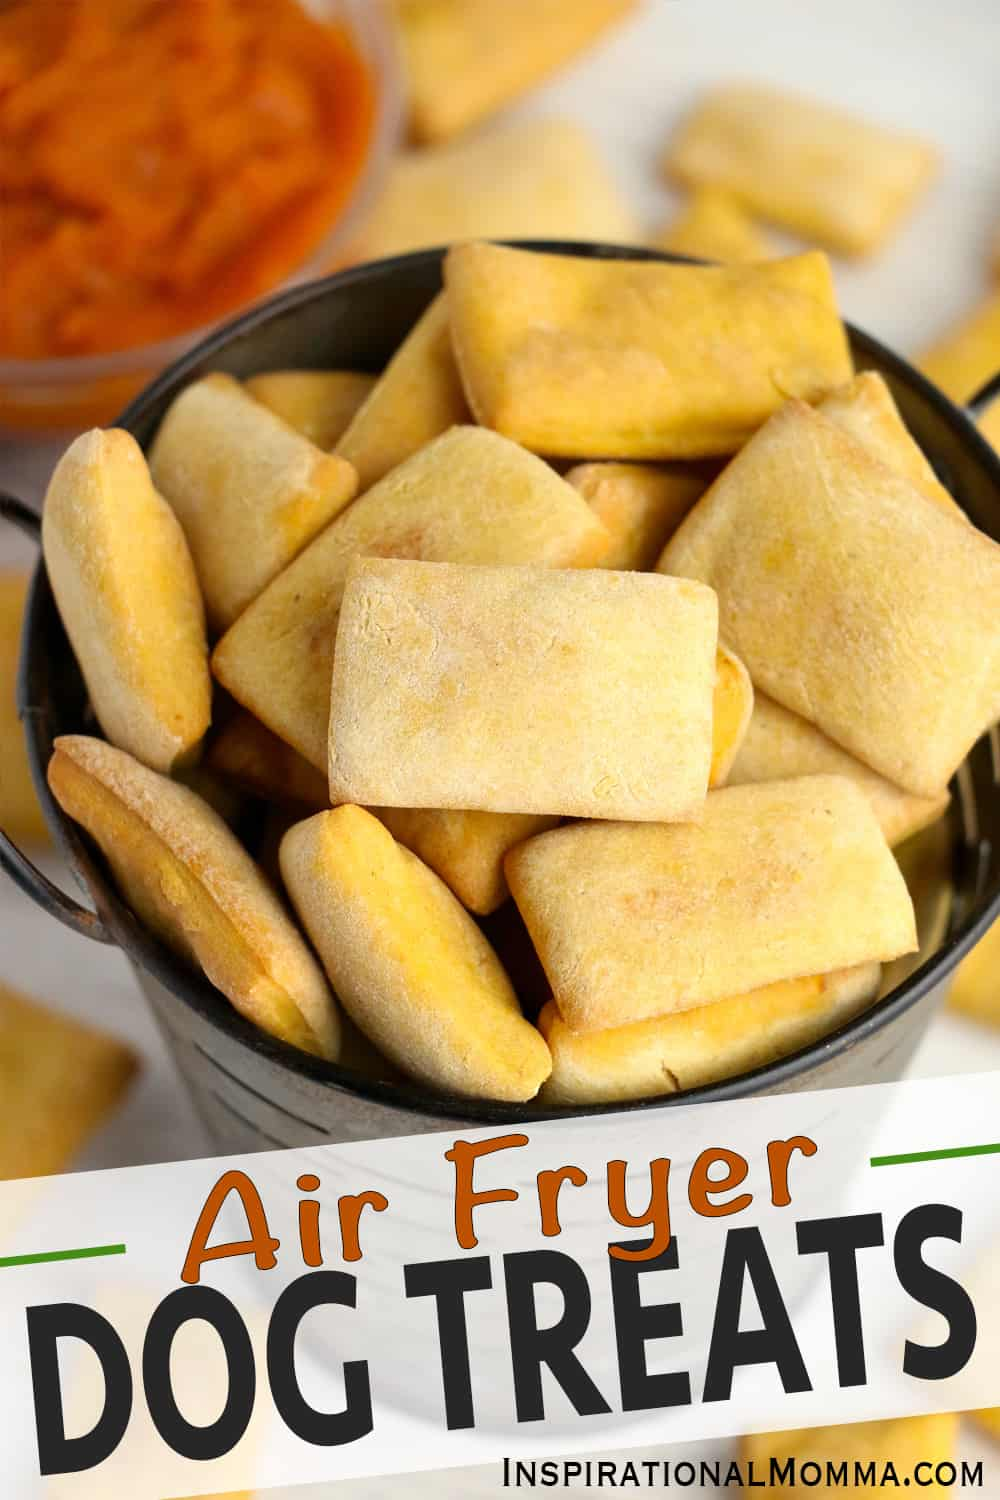 Air Fryer Dog Treats are a healthy way to spoil your furry friend. Made with pumpkin and peanut butter, they are flavorful and delish! #inspirationalmomma #airfryerdogtreats #homemadedogtreats #pumpkindogtreats #peanutbutterdogtreats #dogtreats